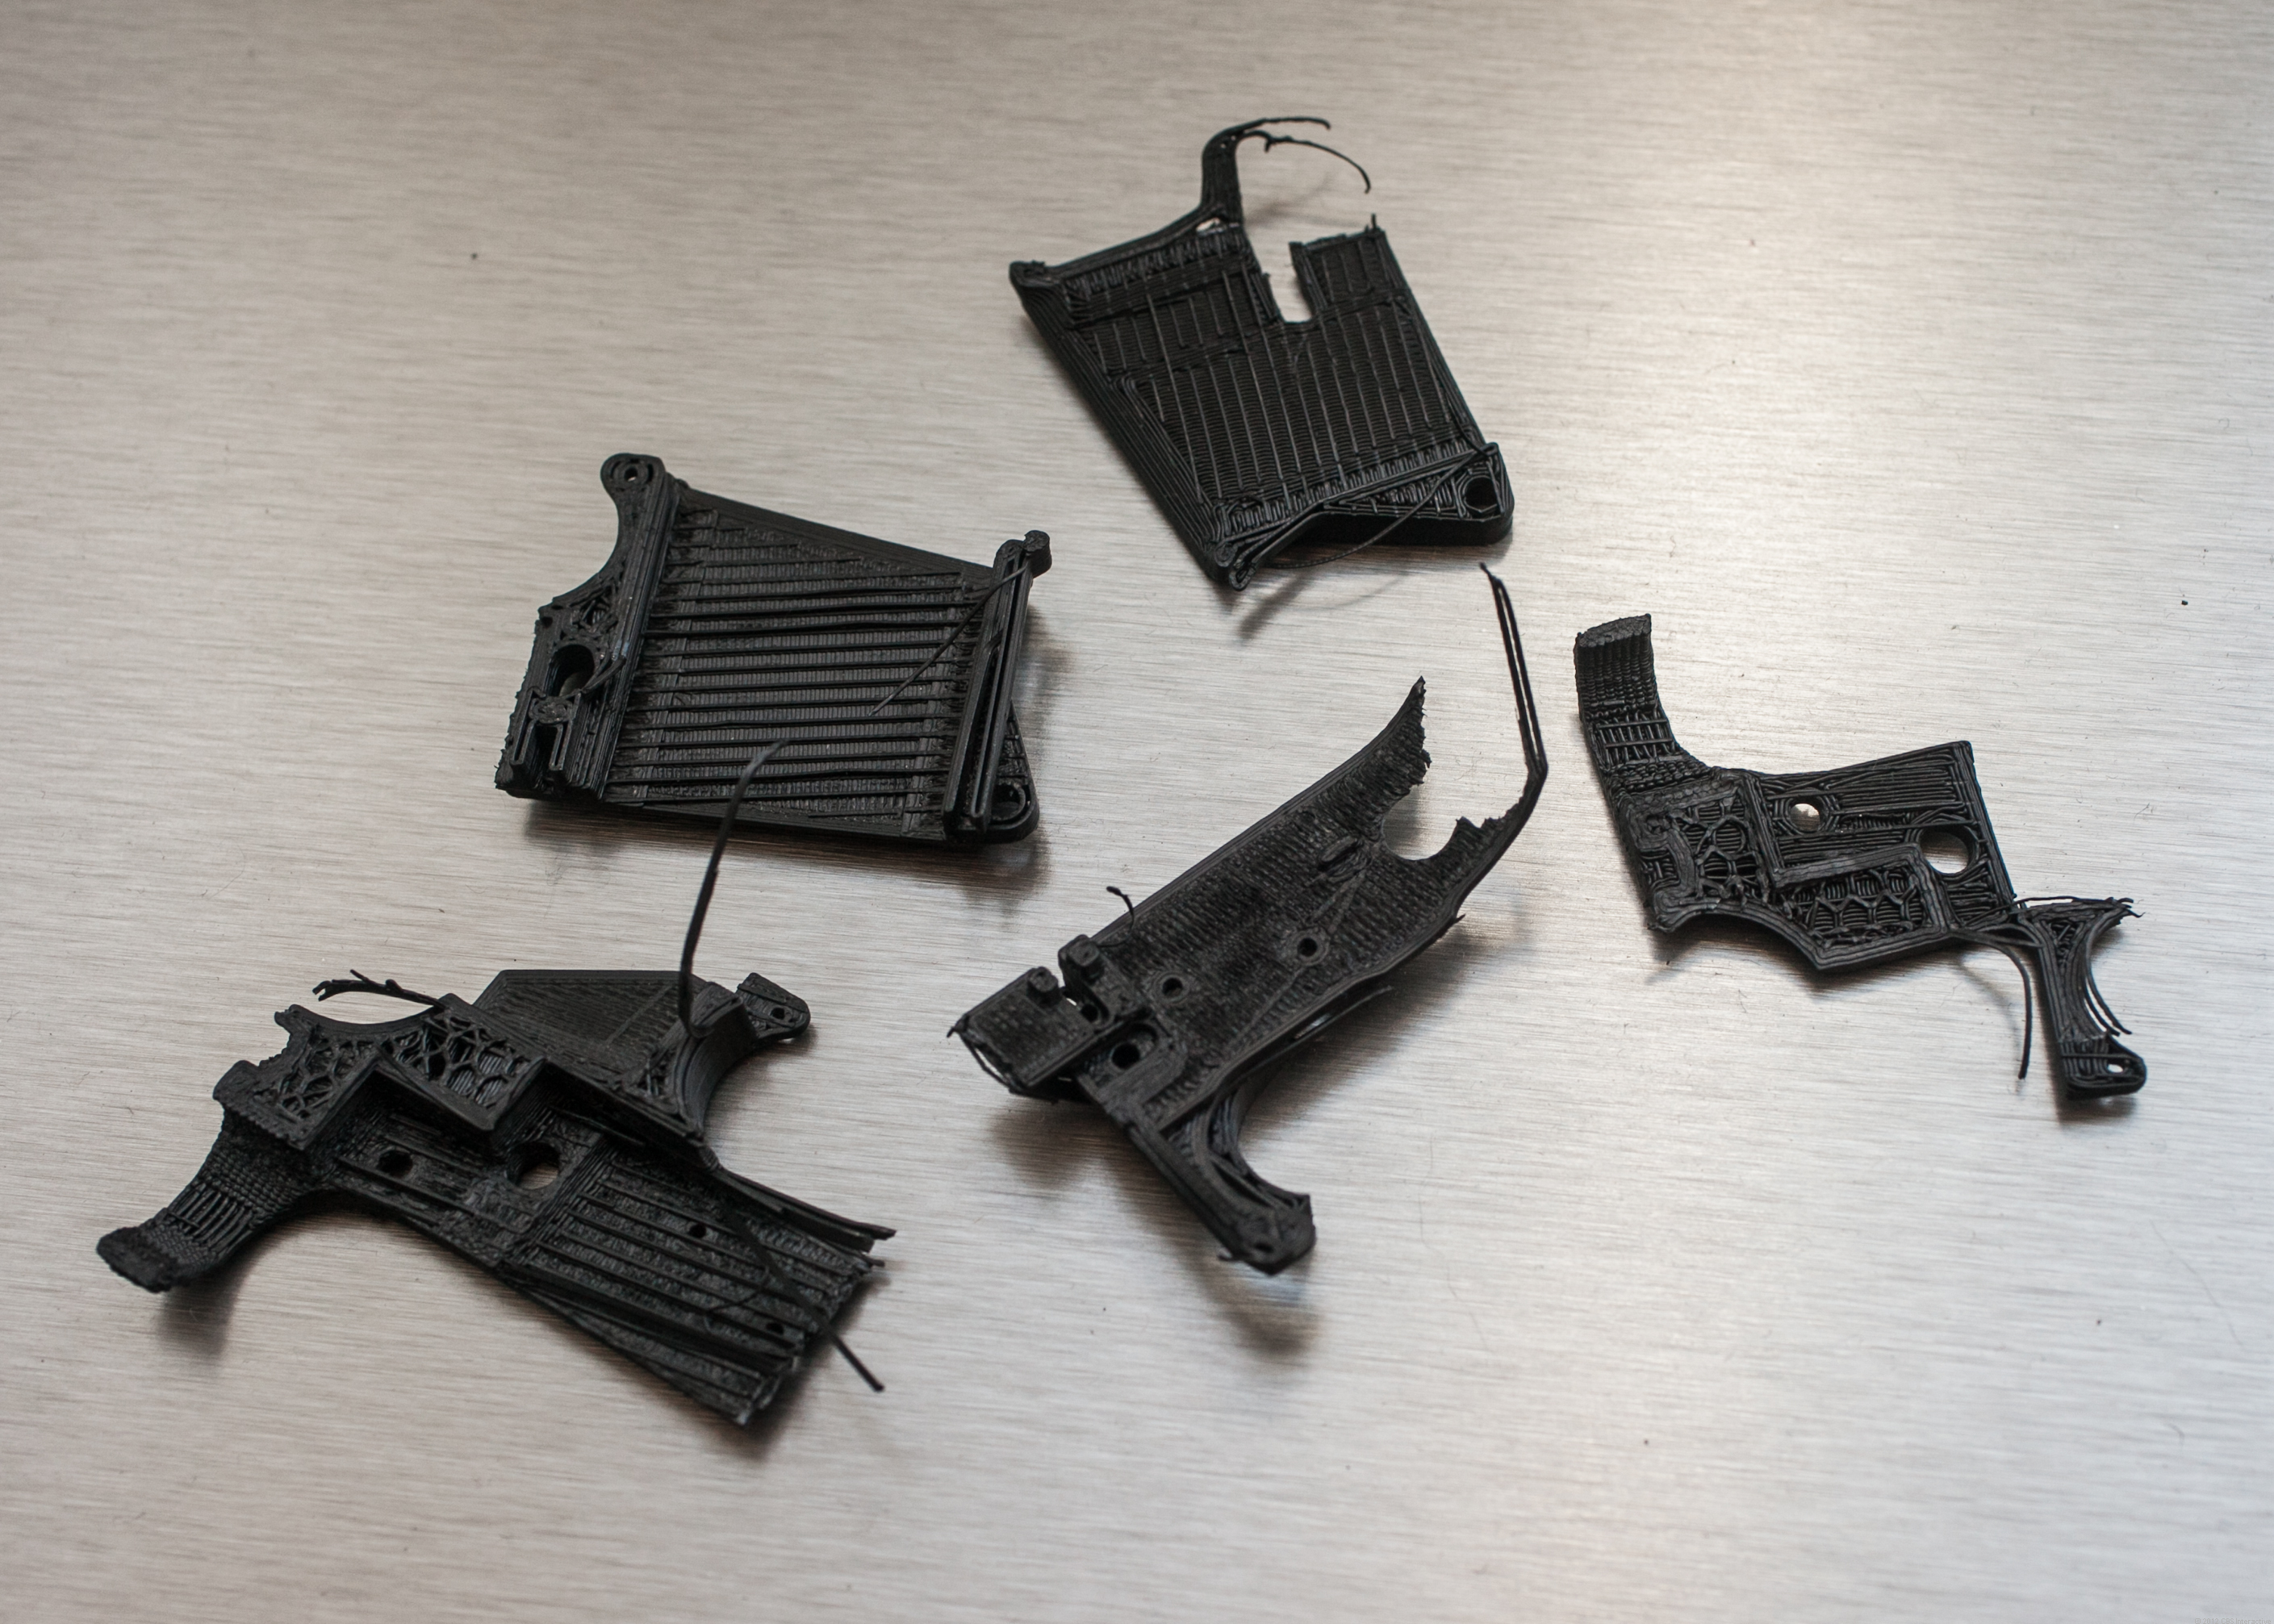 The remains of my miniature AR 15 receiver.